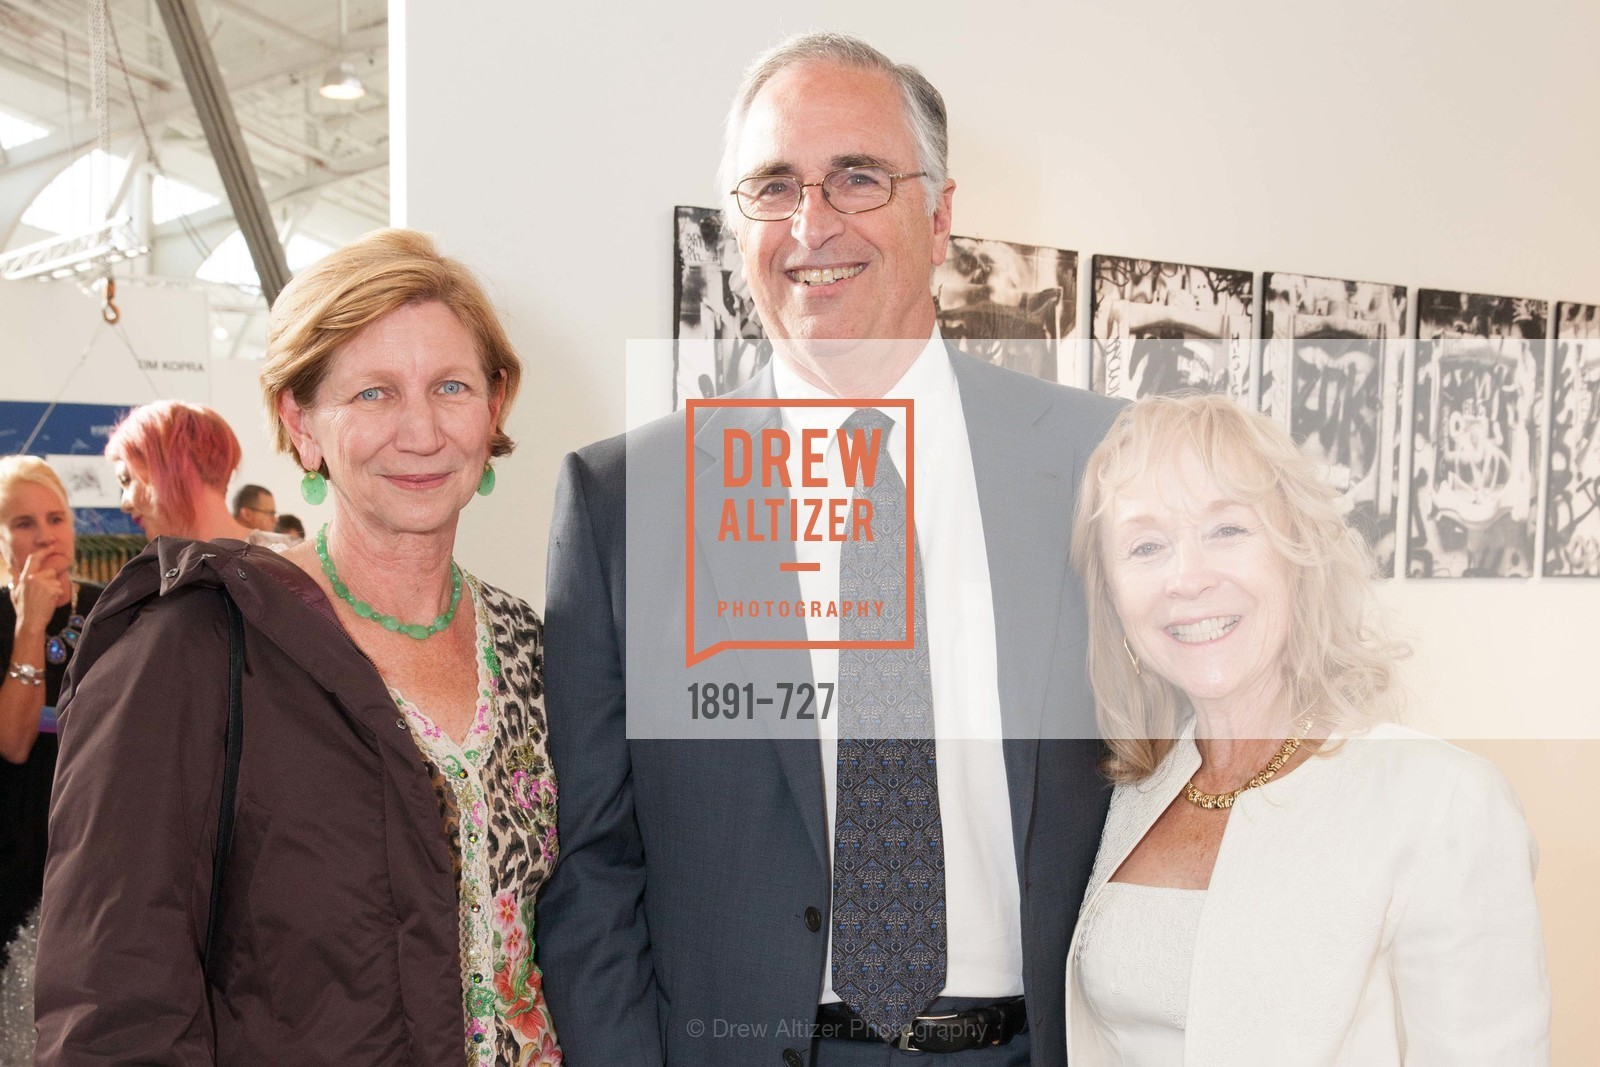 Penelope Finnie, Nick Helt, Cynthia Plevin, SAN FRANCISCO ART INSTITUTE Gala Honoring Art Visionary and Advocate ROSELYNE CHROMAN SWIG, US, May 14th, 2015,Drew Altizer, Drew Altizer Photography, full-service agency, private events, San Francisco photographer, photographer california